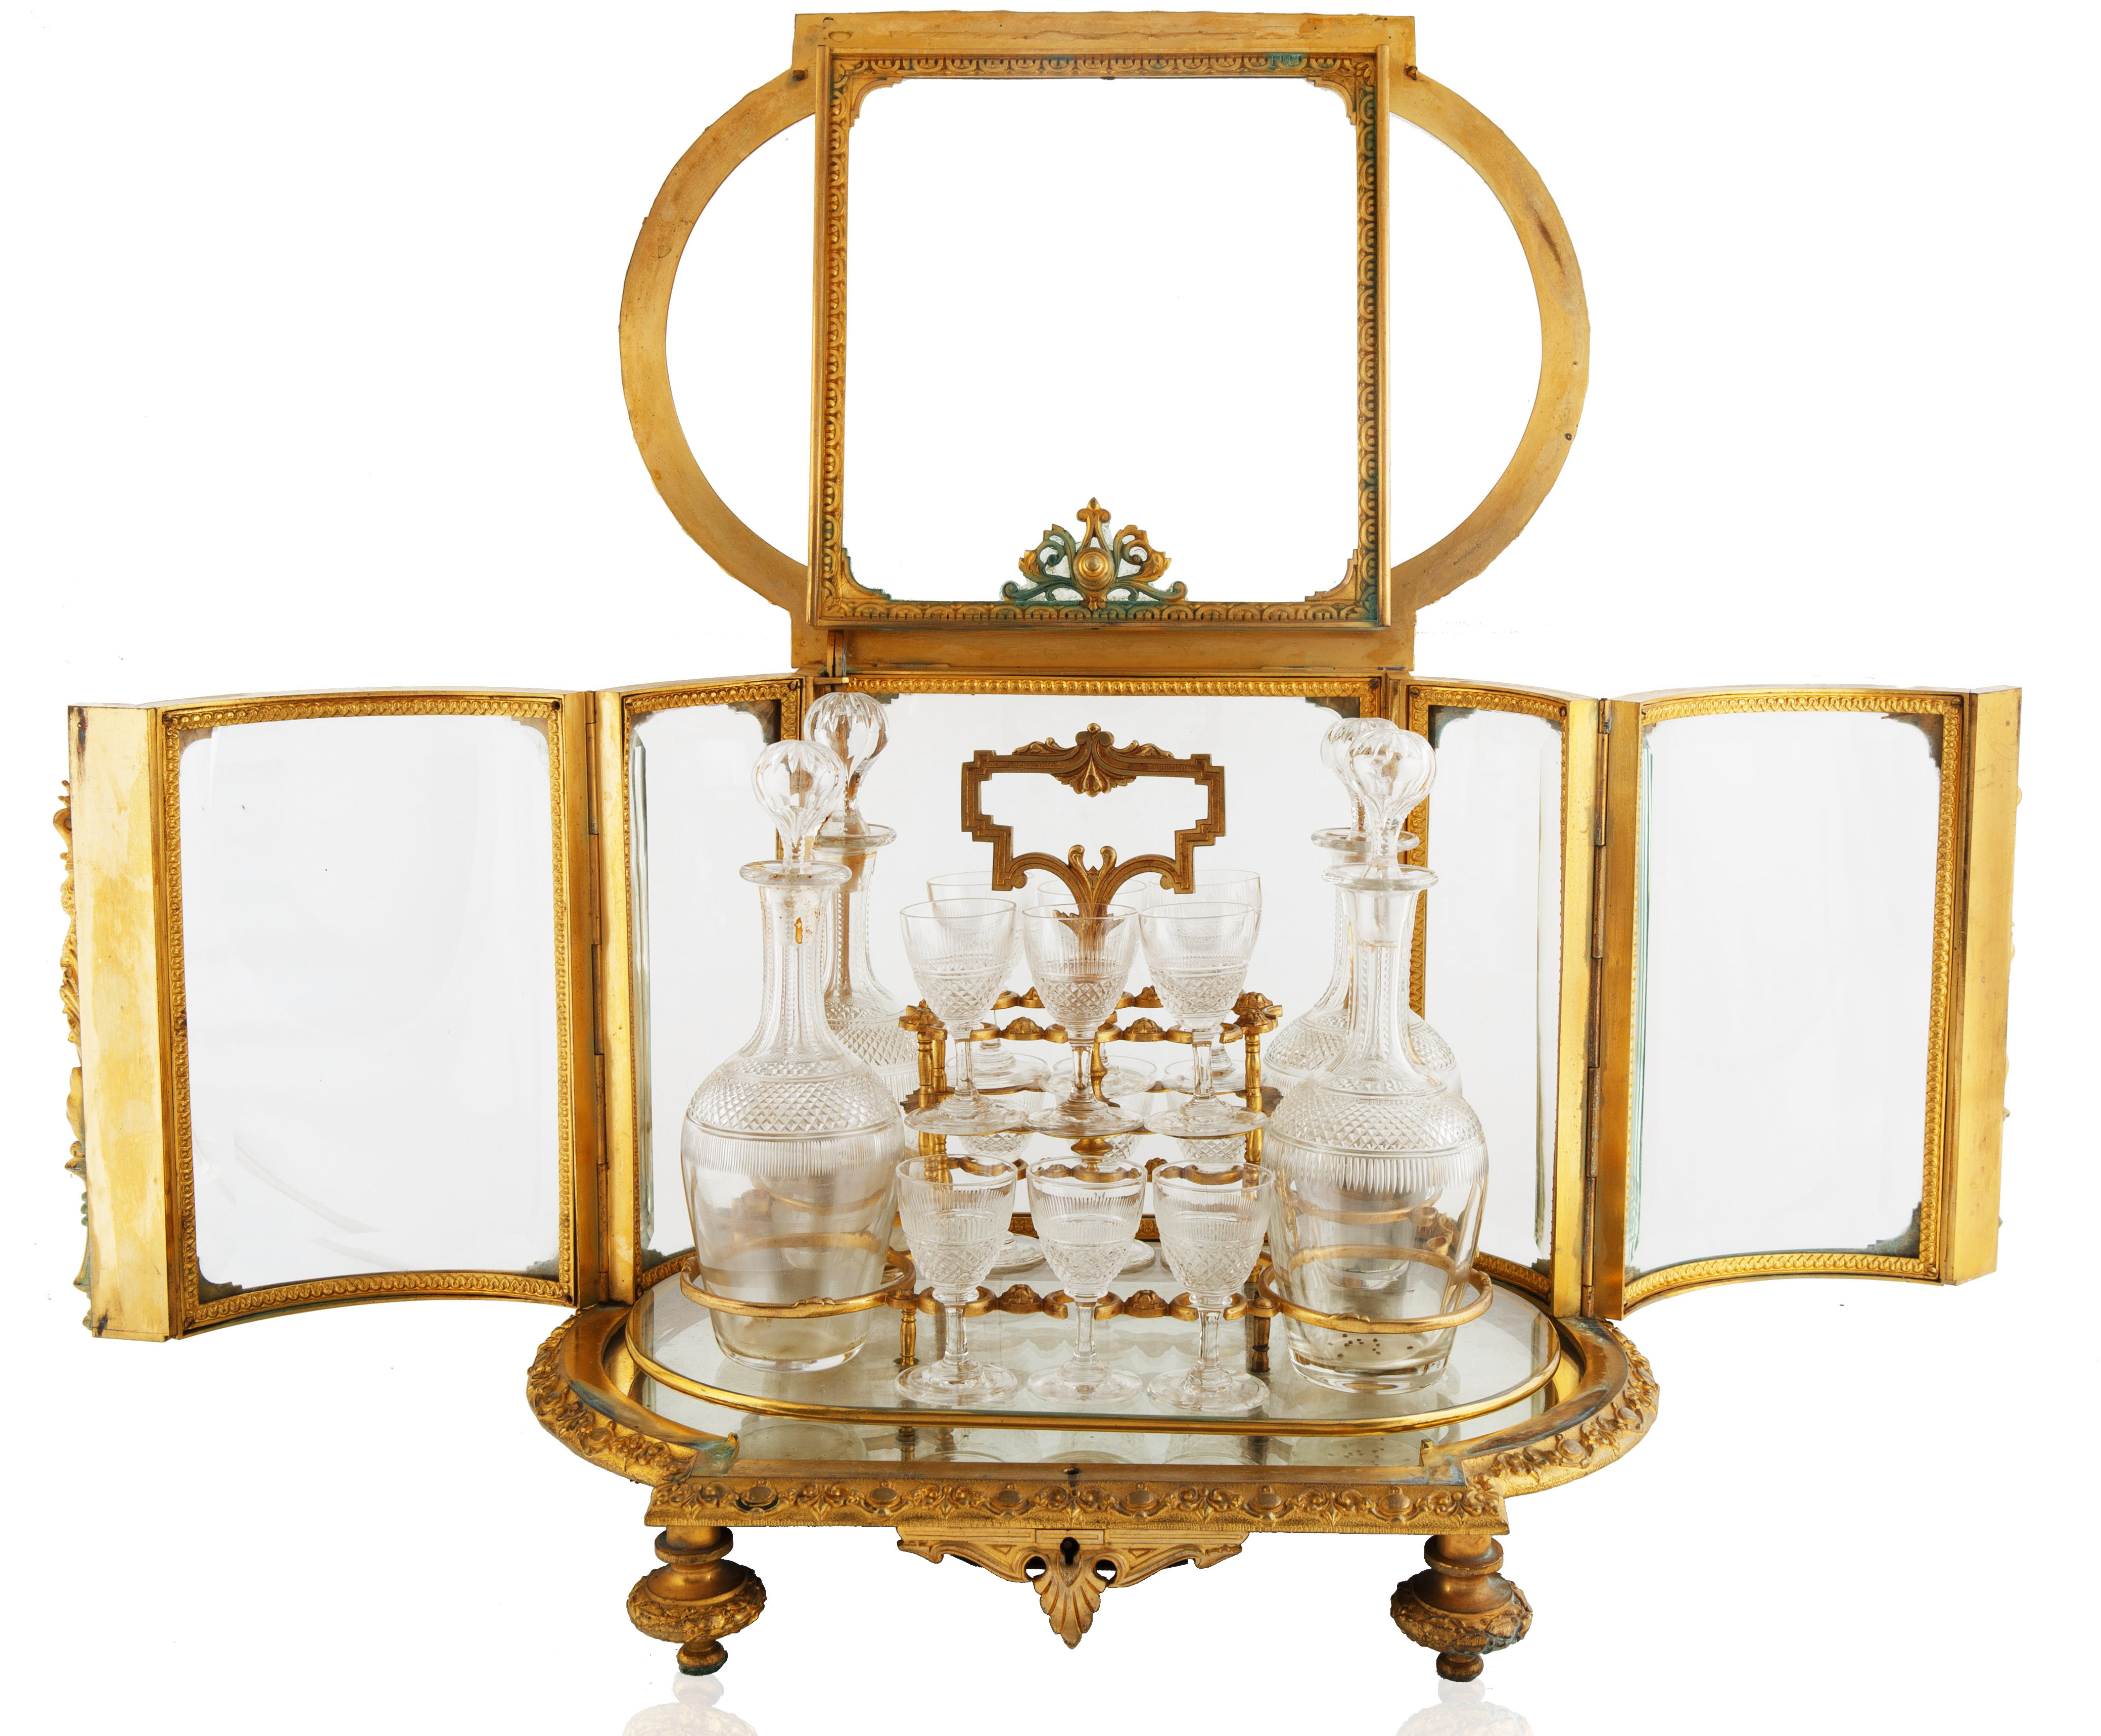 LATE 19TH-EARLY 20TH CENTURY FRENCH LOUIS XVI STYLE GILT BRONZE CAVE A LIQUEUR - Image 5 of 7